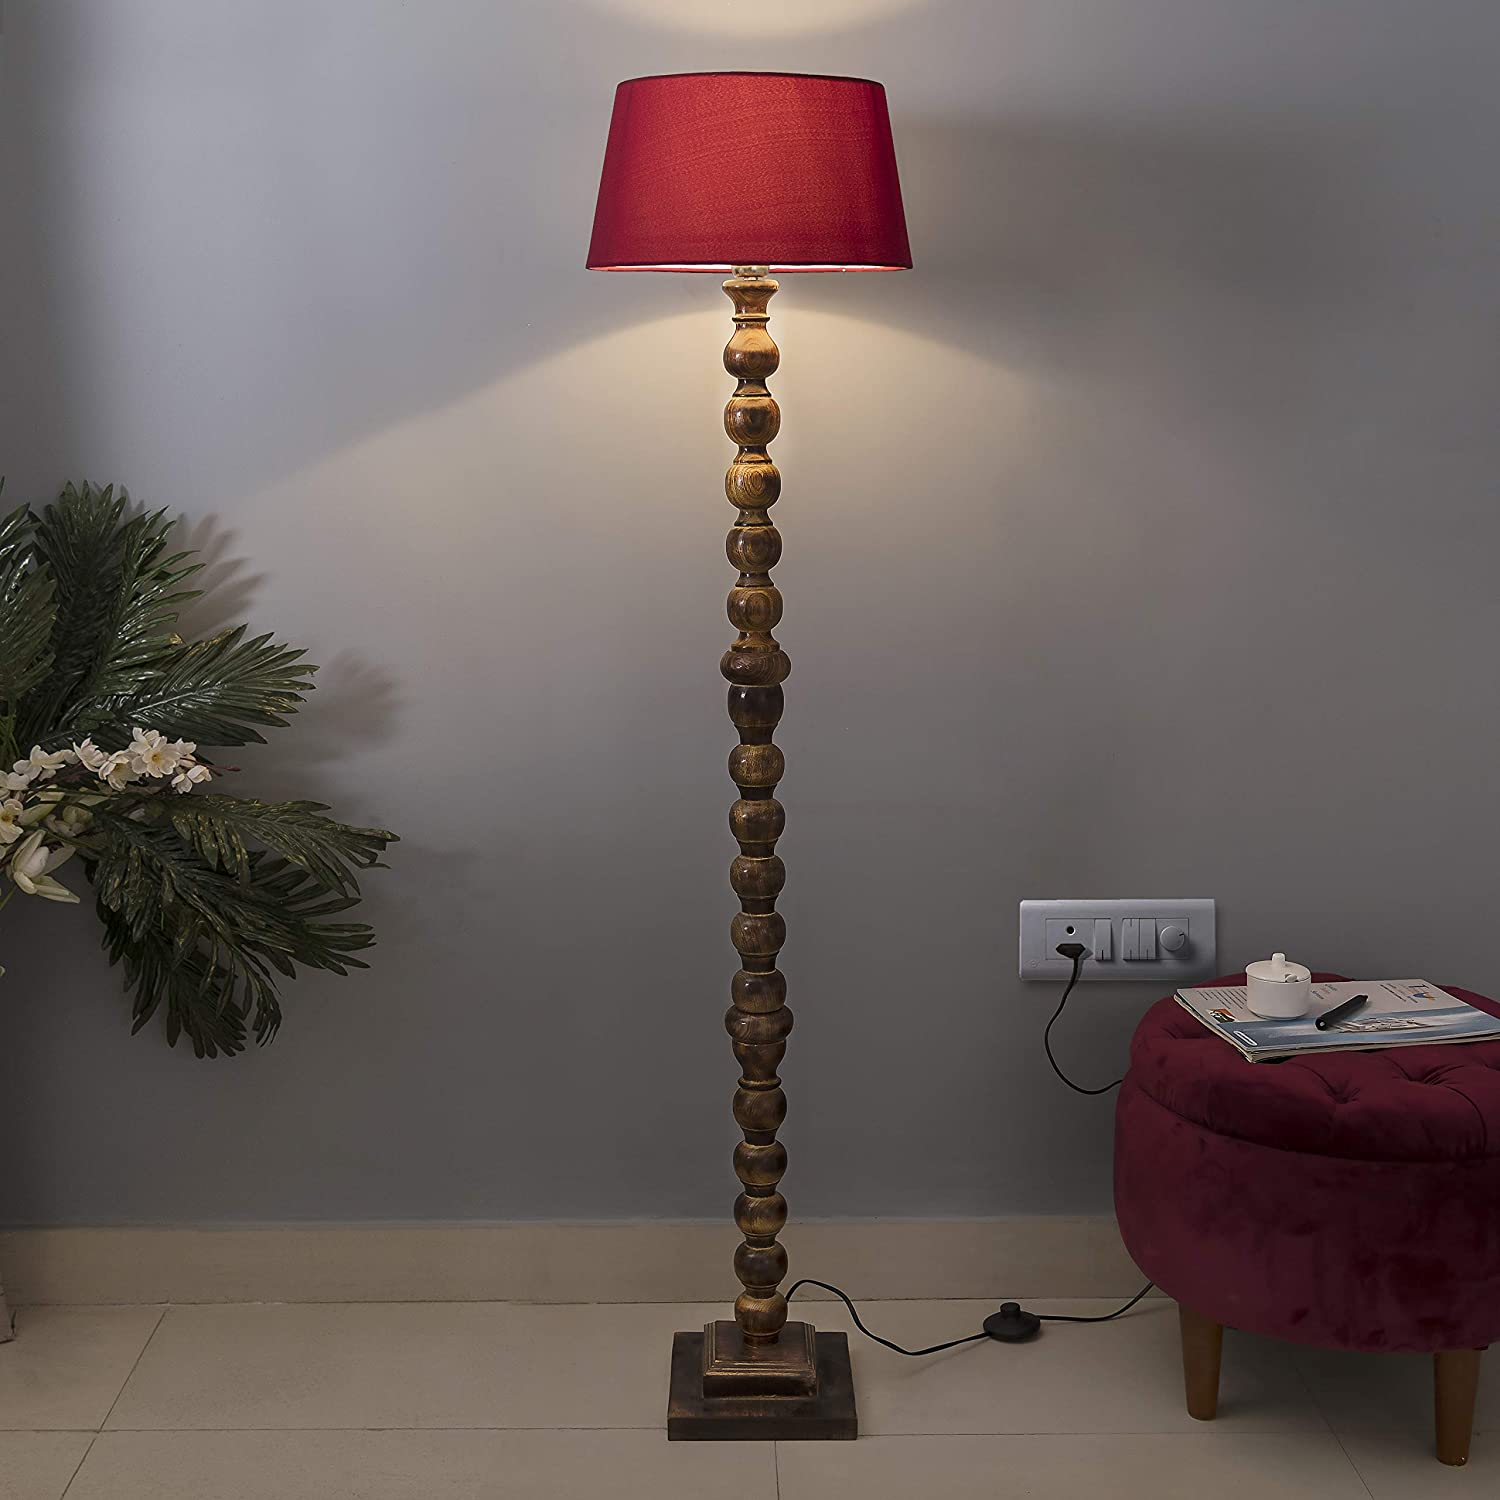 Mugal Wooden Floor Lamp with Shade